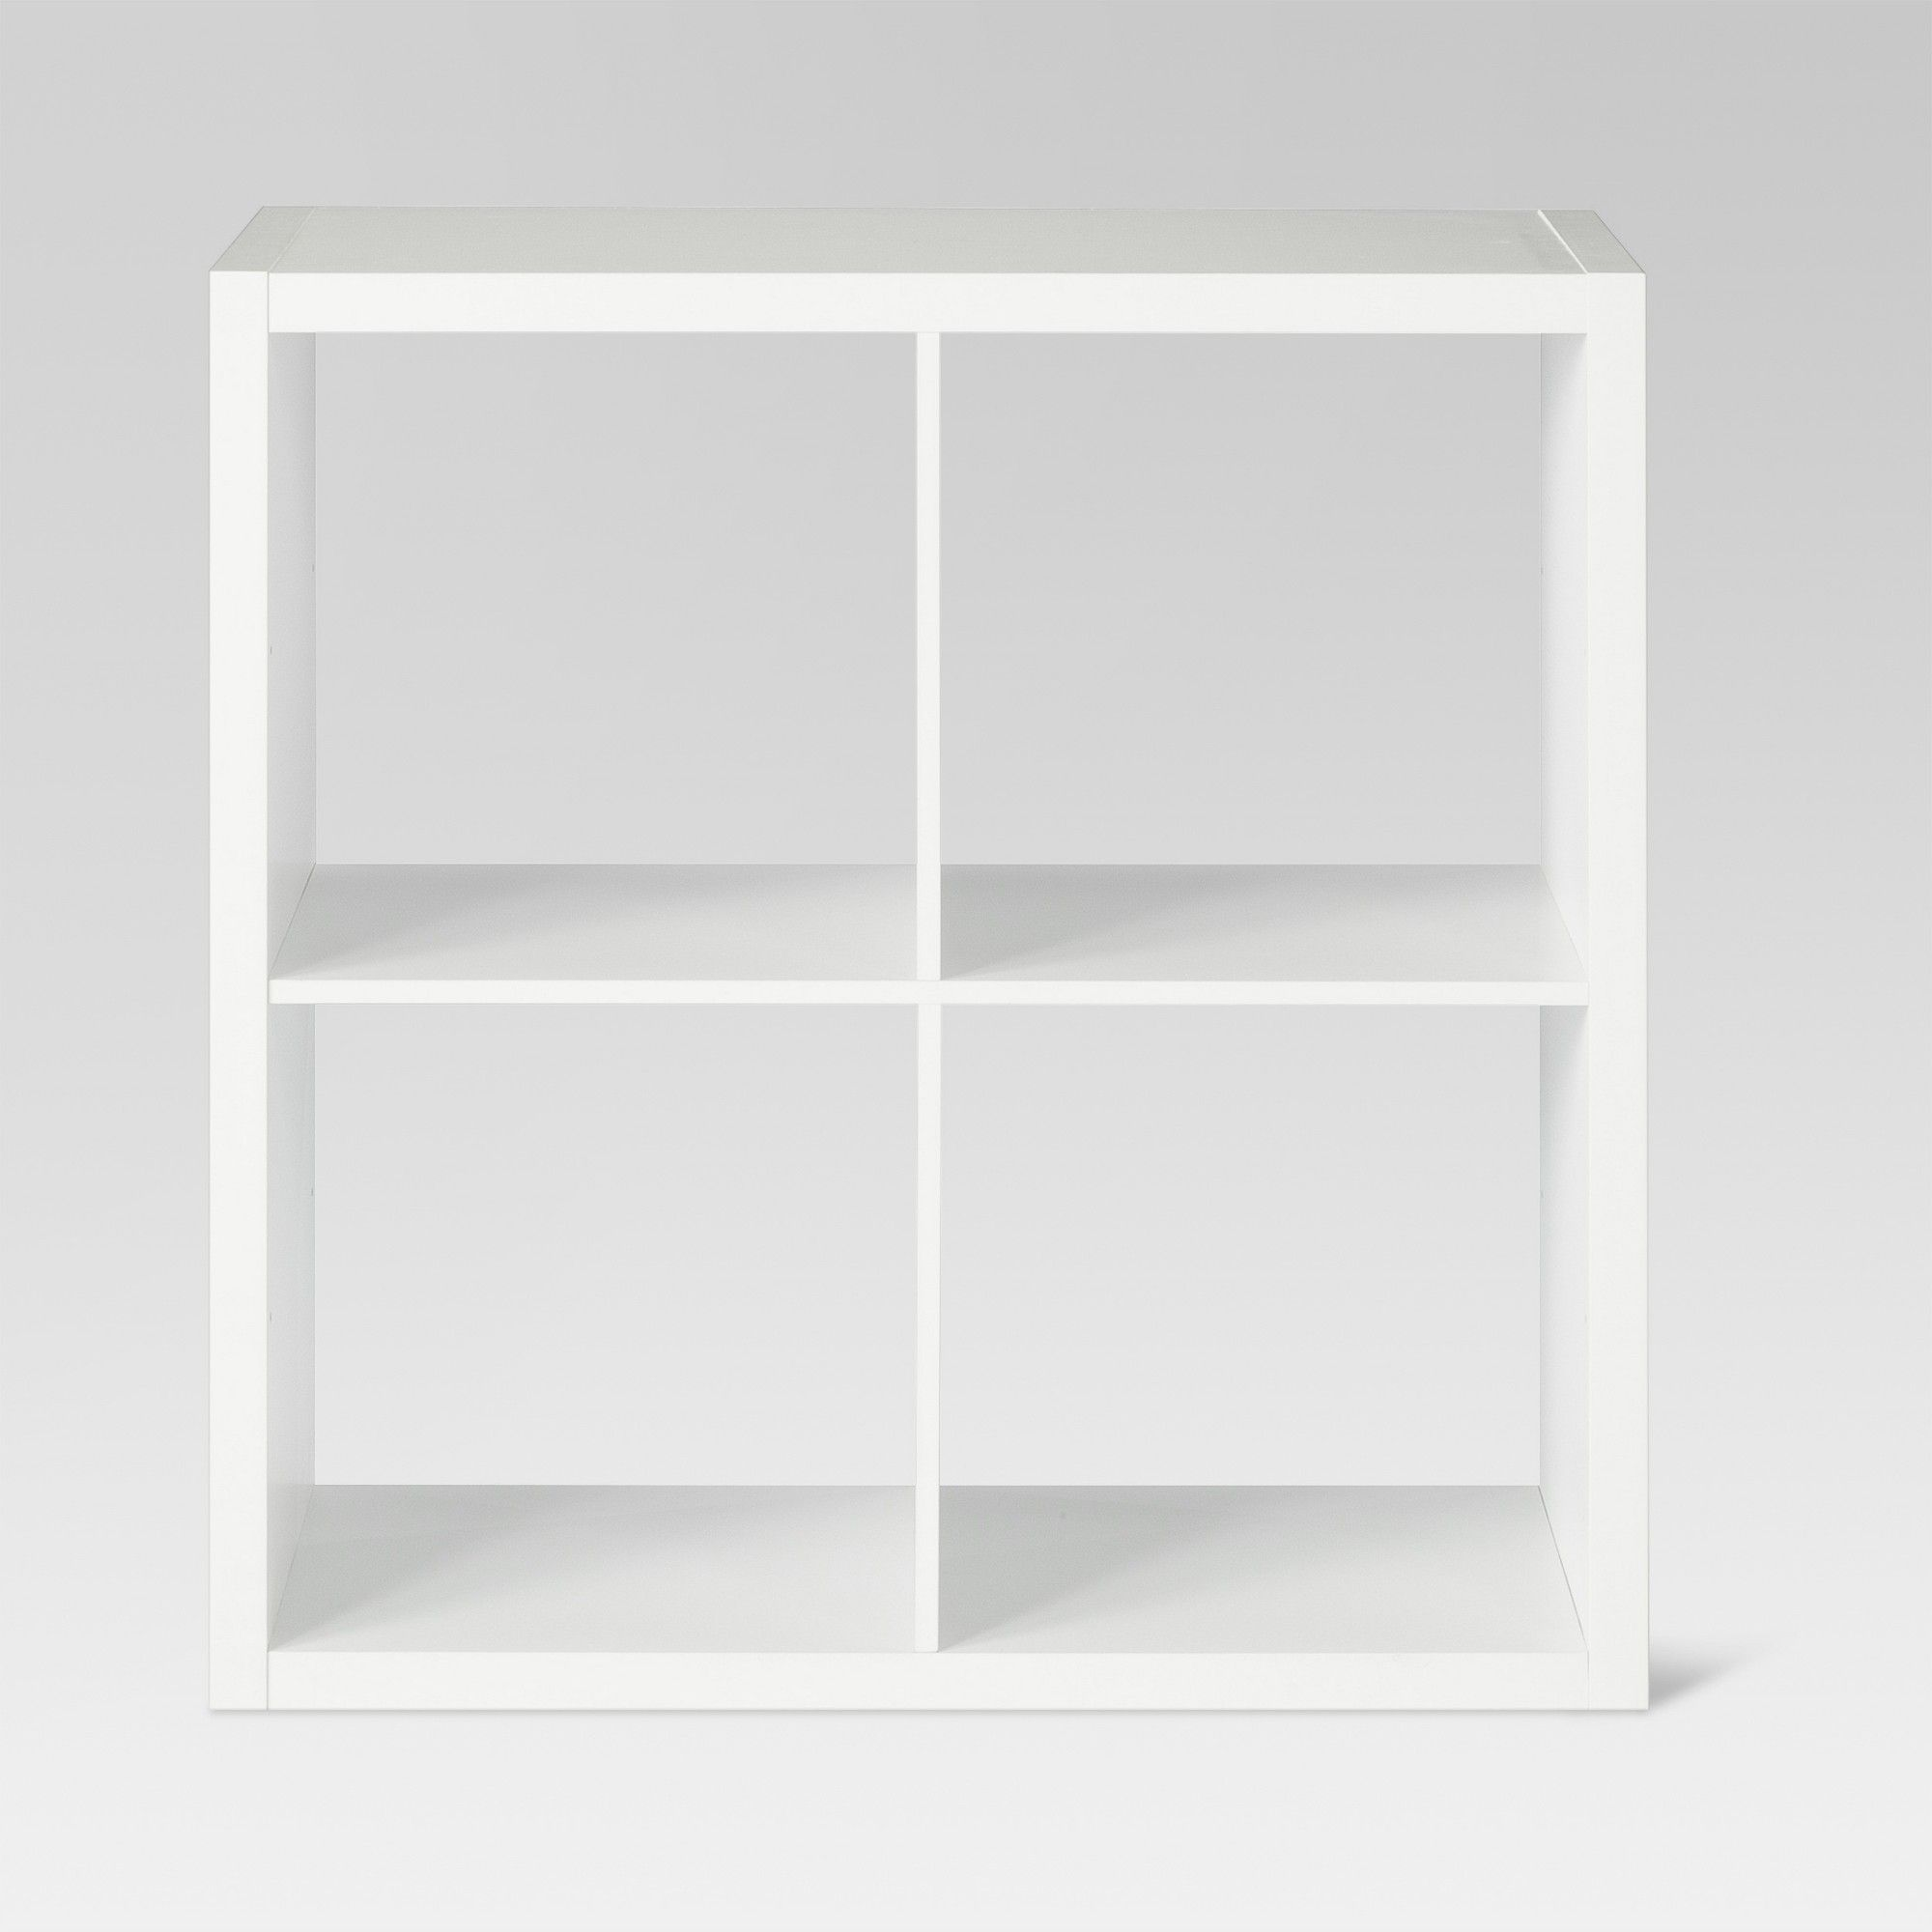 4 Cube Organizer Shelf White 13 Threshold Cube Organizer 4 Cube Organizer Cube Storage